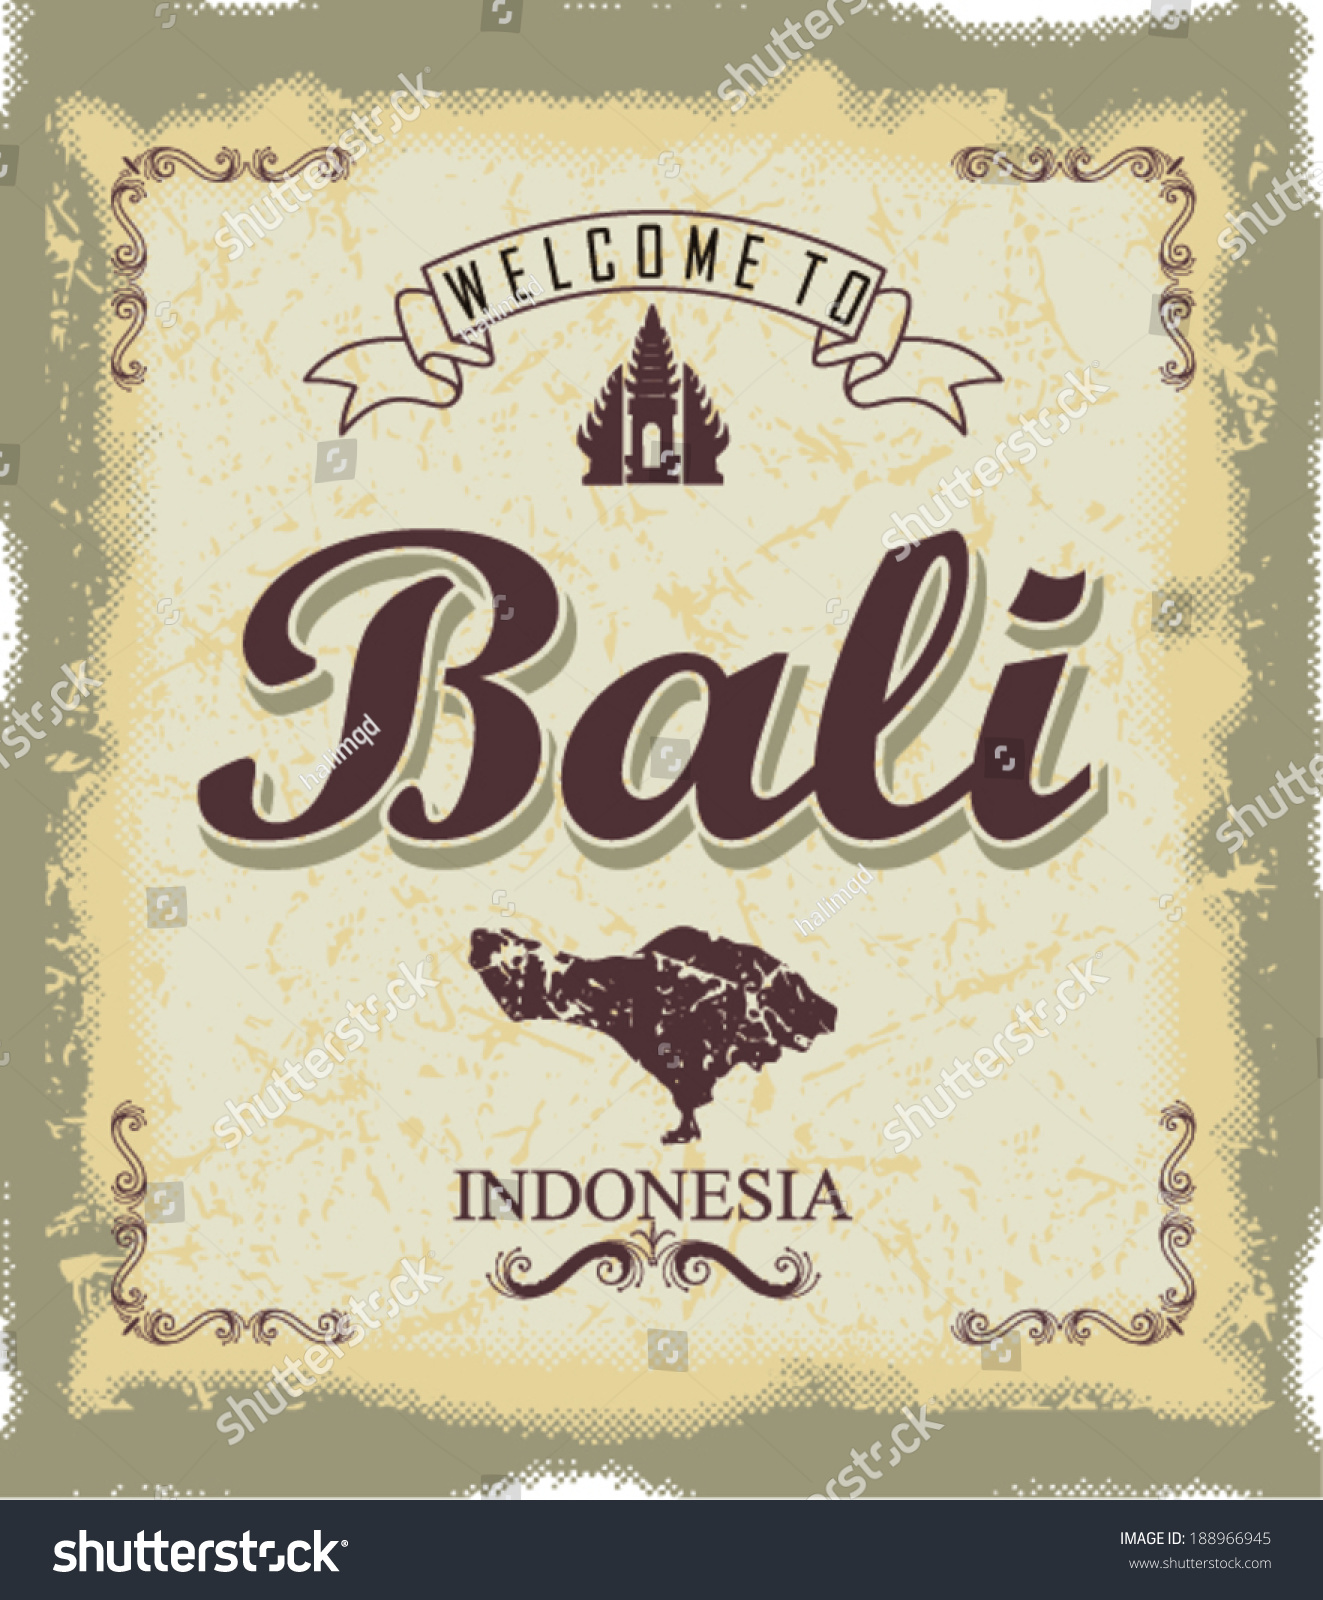 Vintage touristic welcome bali stock vector royalty free 188966945 vintage touristic welcome to bali thecheapjerseys Gallery